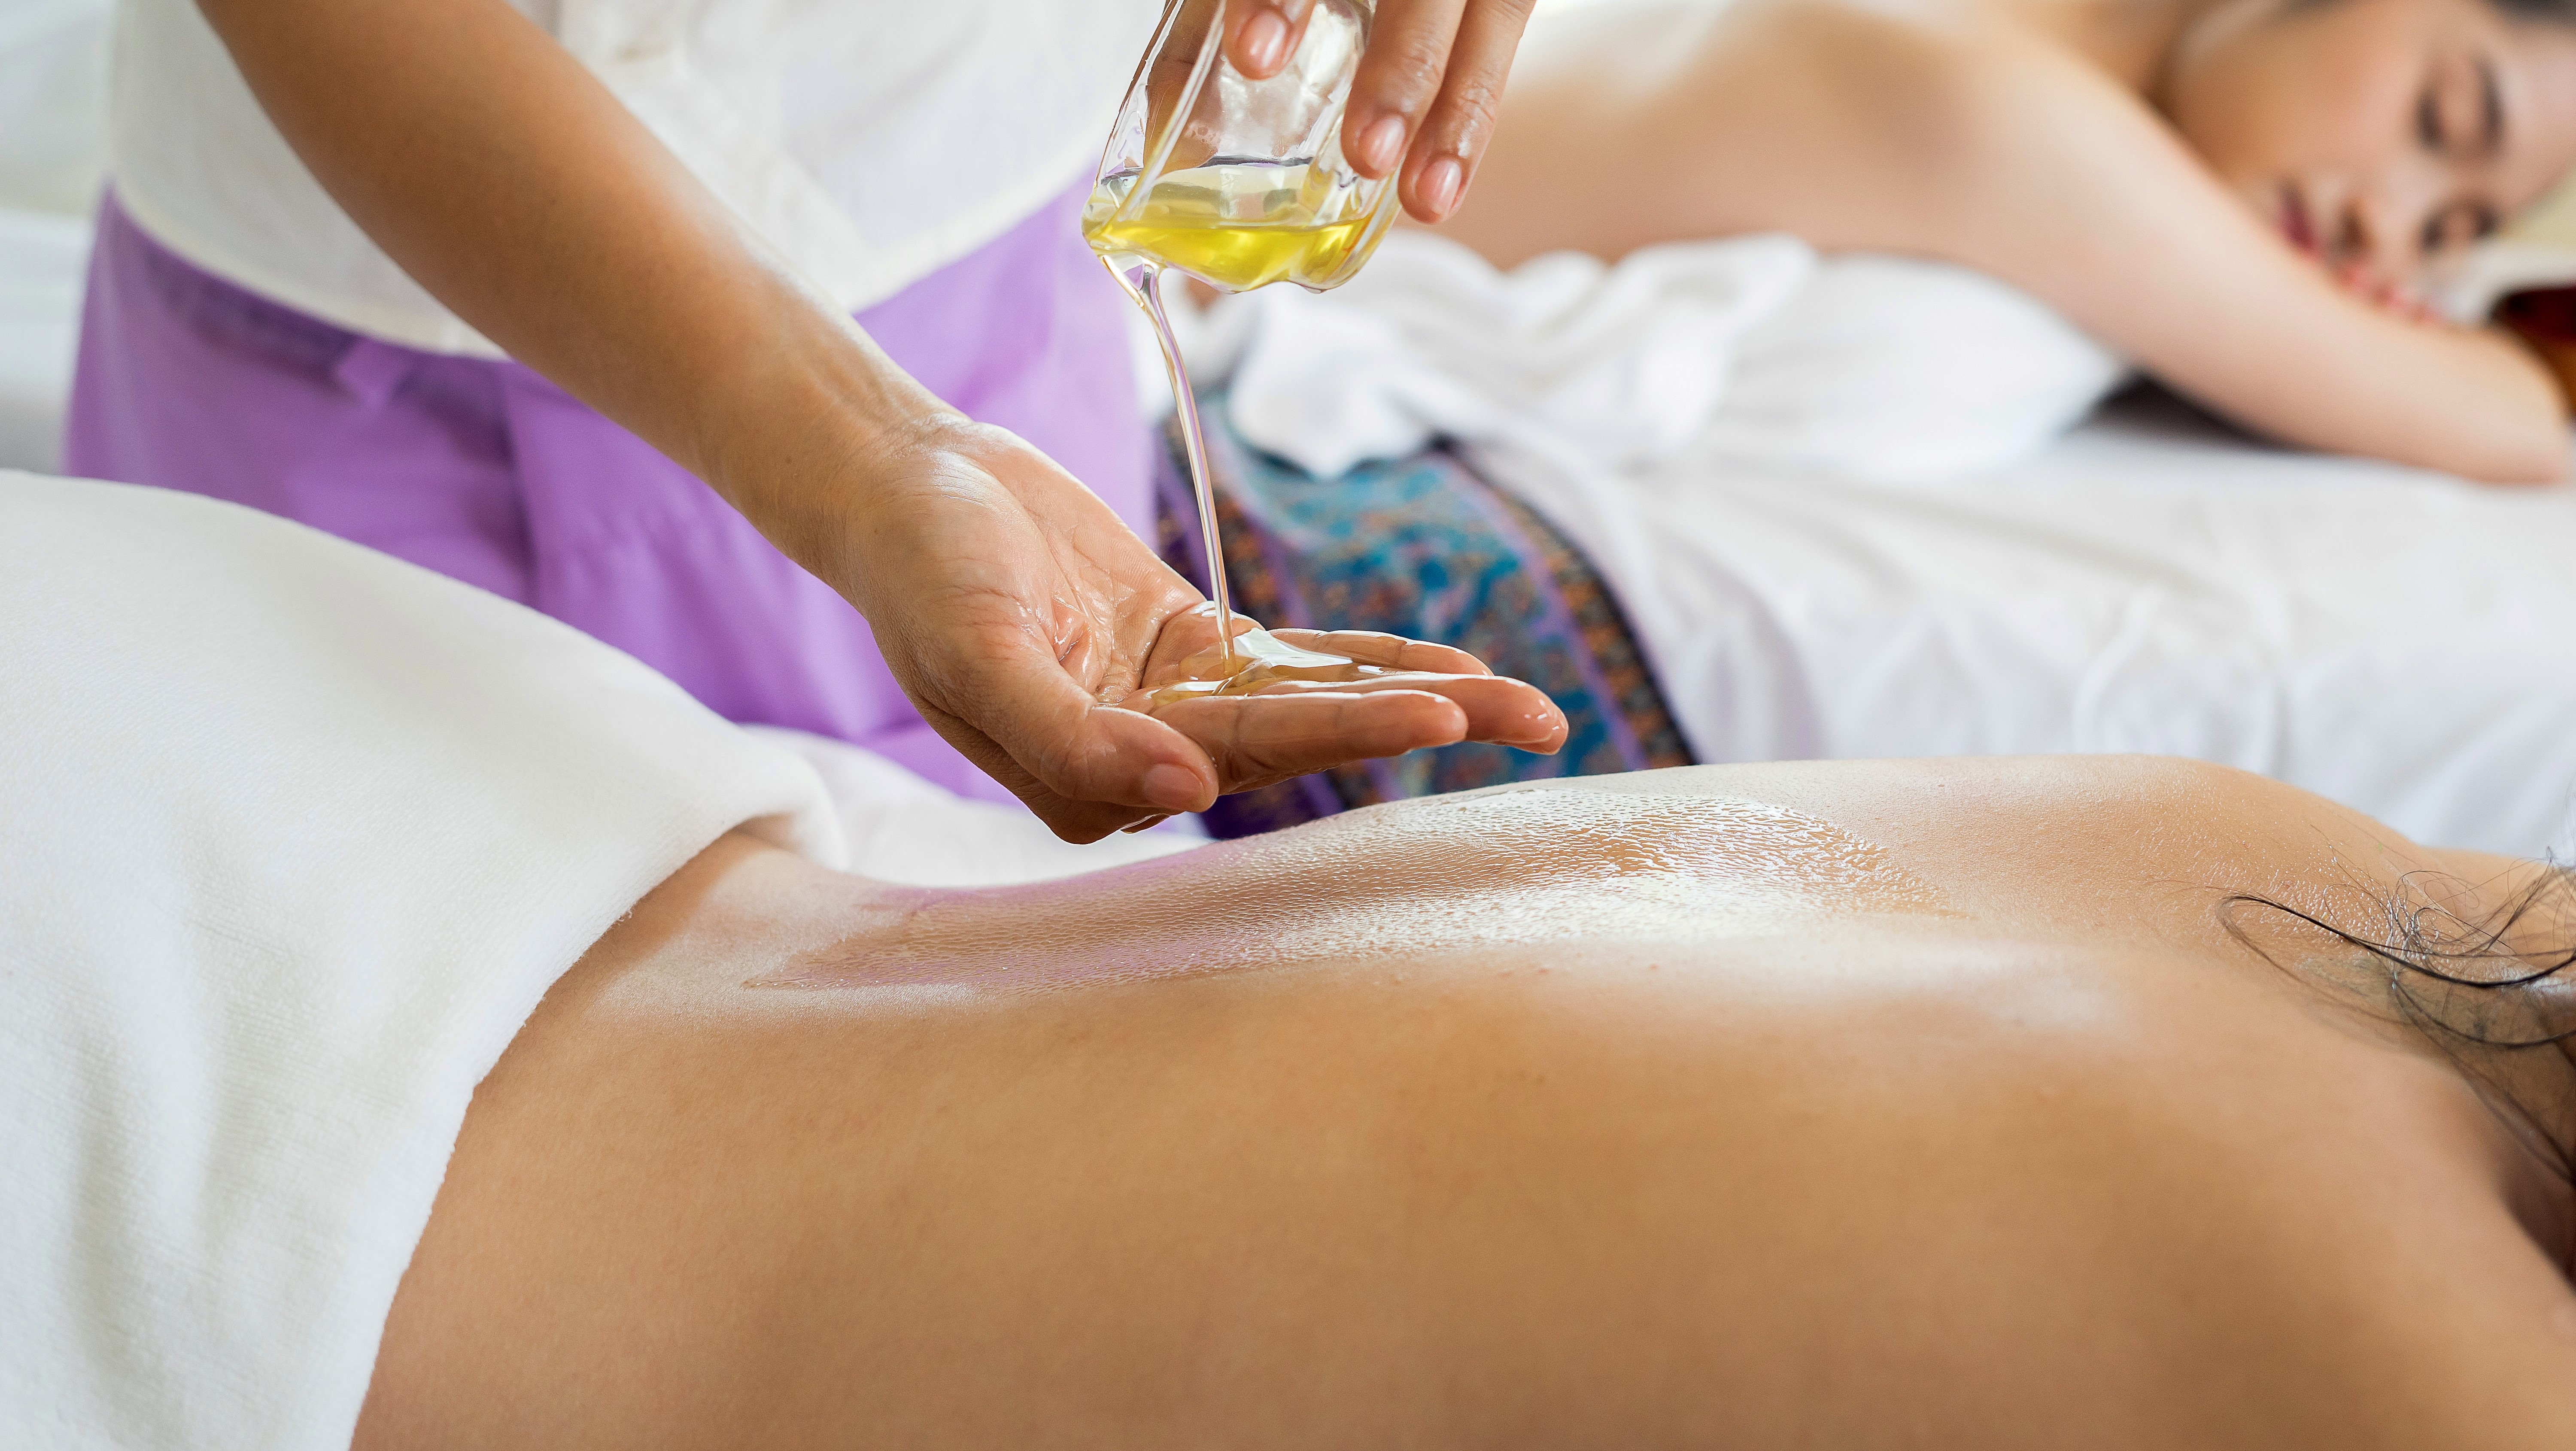 person getting massaged with oil at the spa